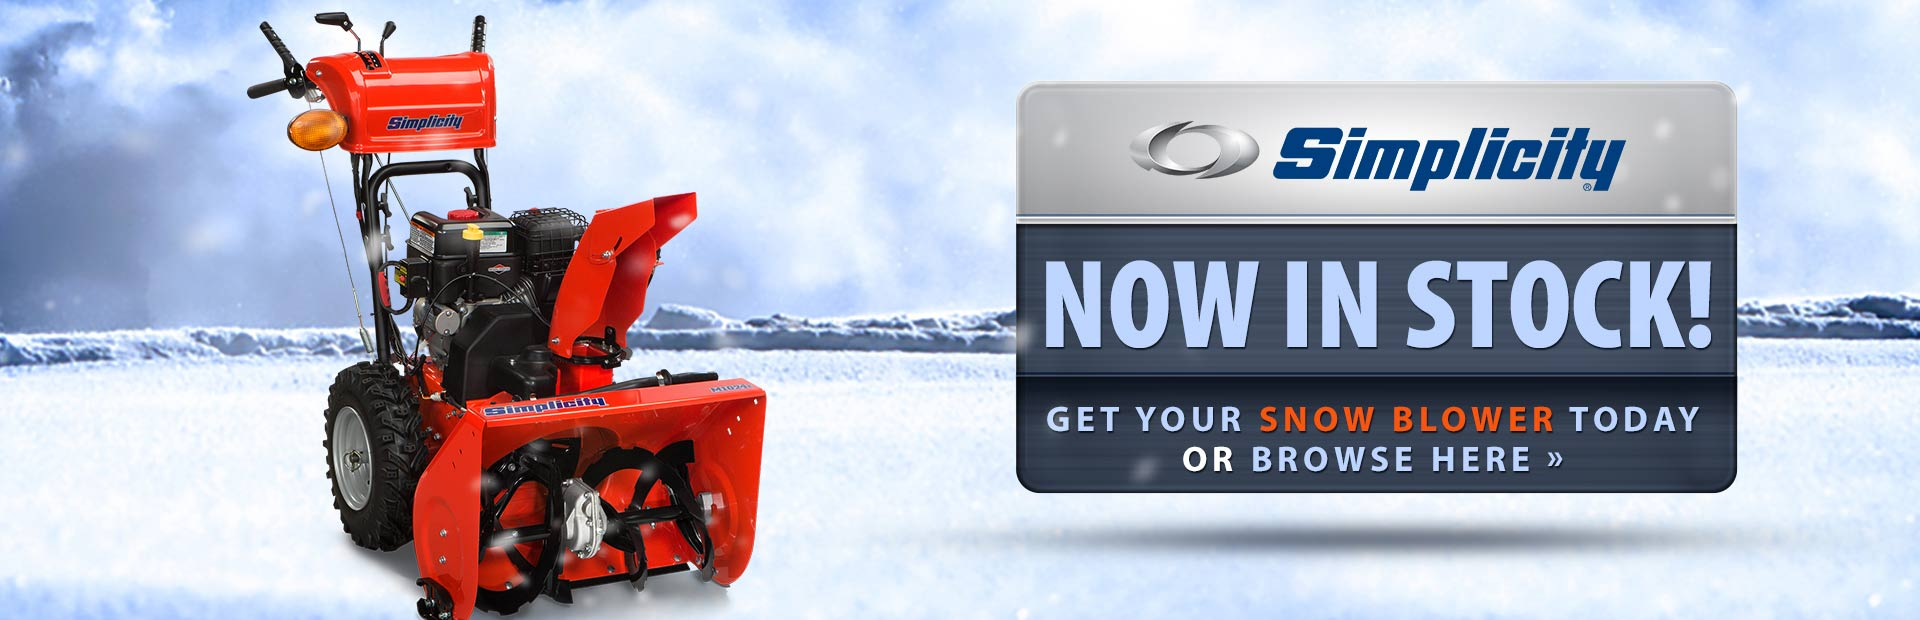 View in-stock Simplicity snow blowers.